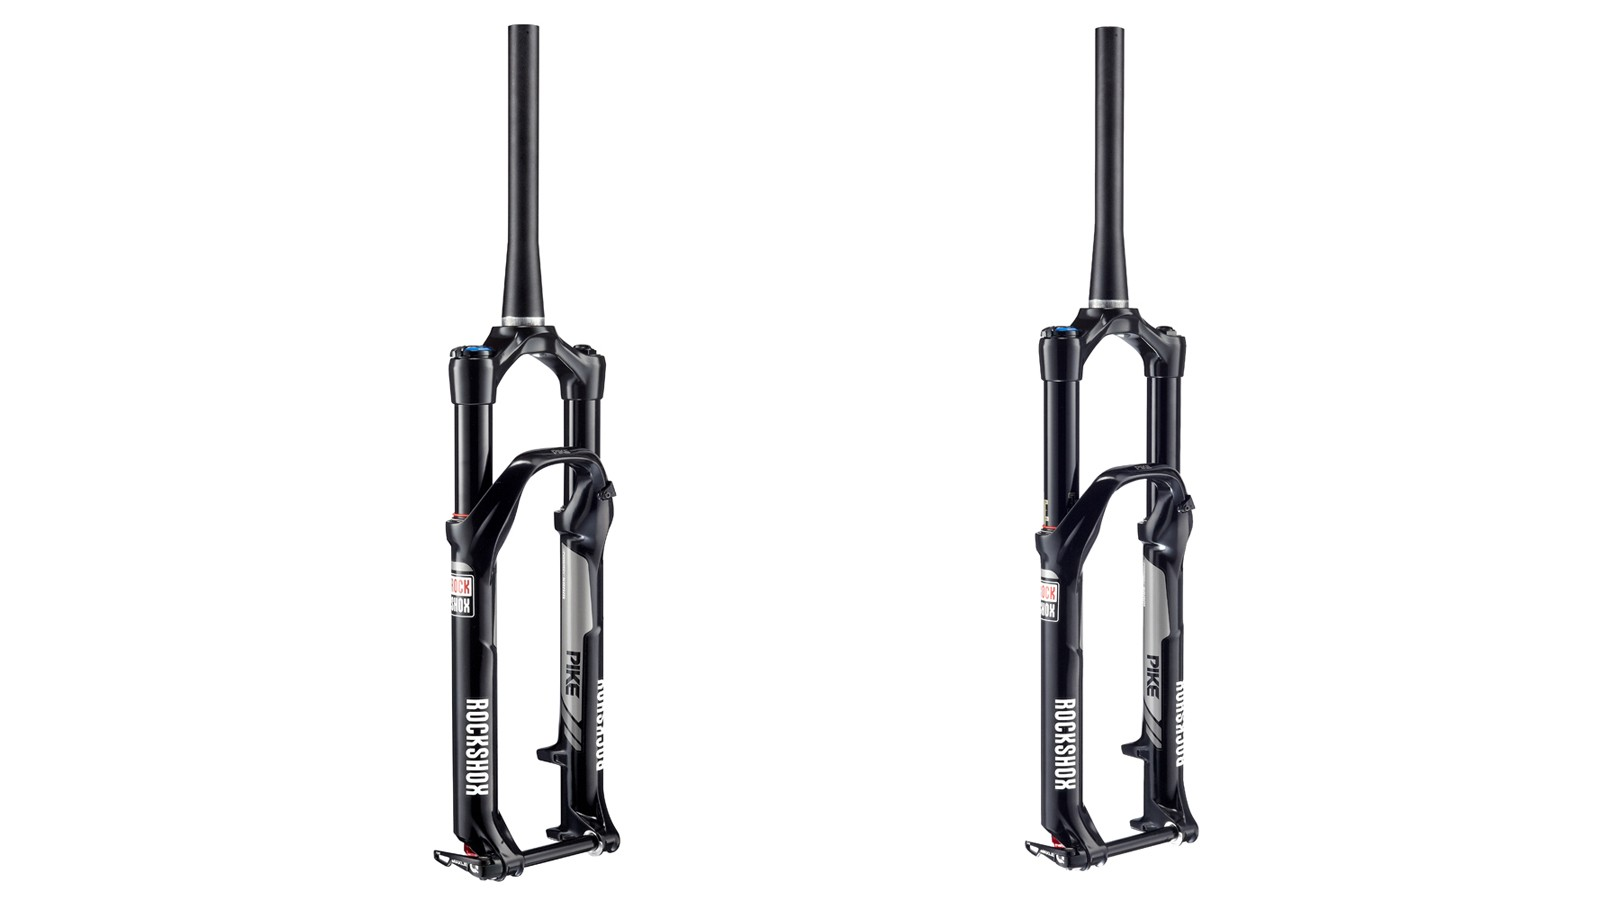 The RockShox Pike DJ will only be offered for 26in wheels and comes in 100mm and 140mm versions